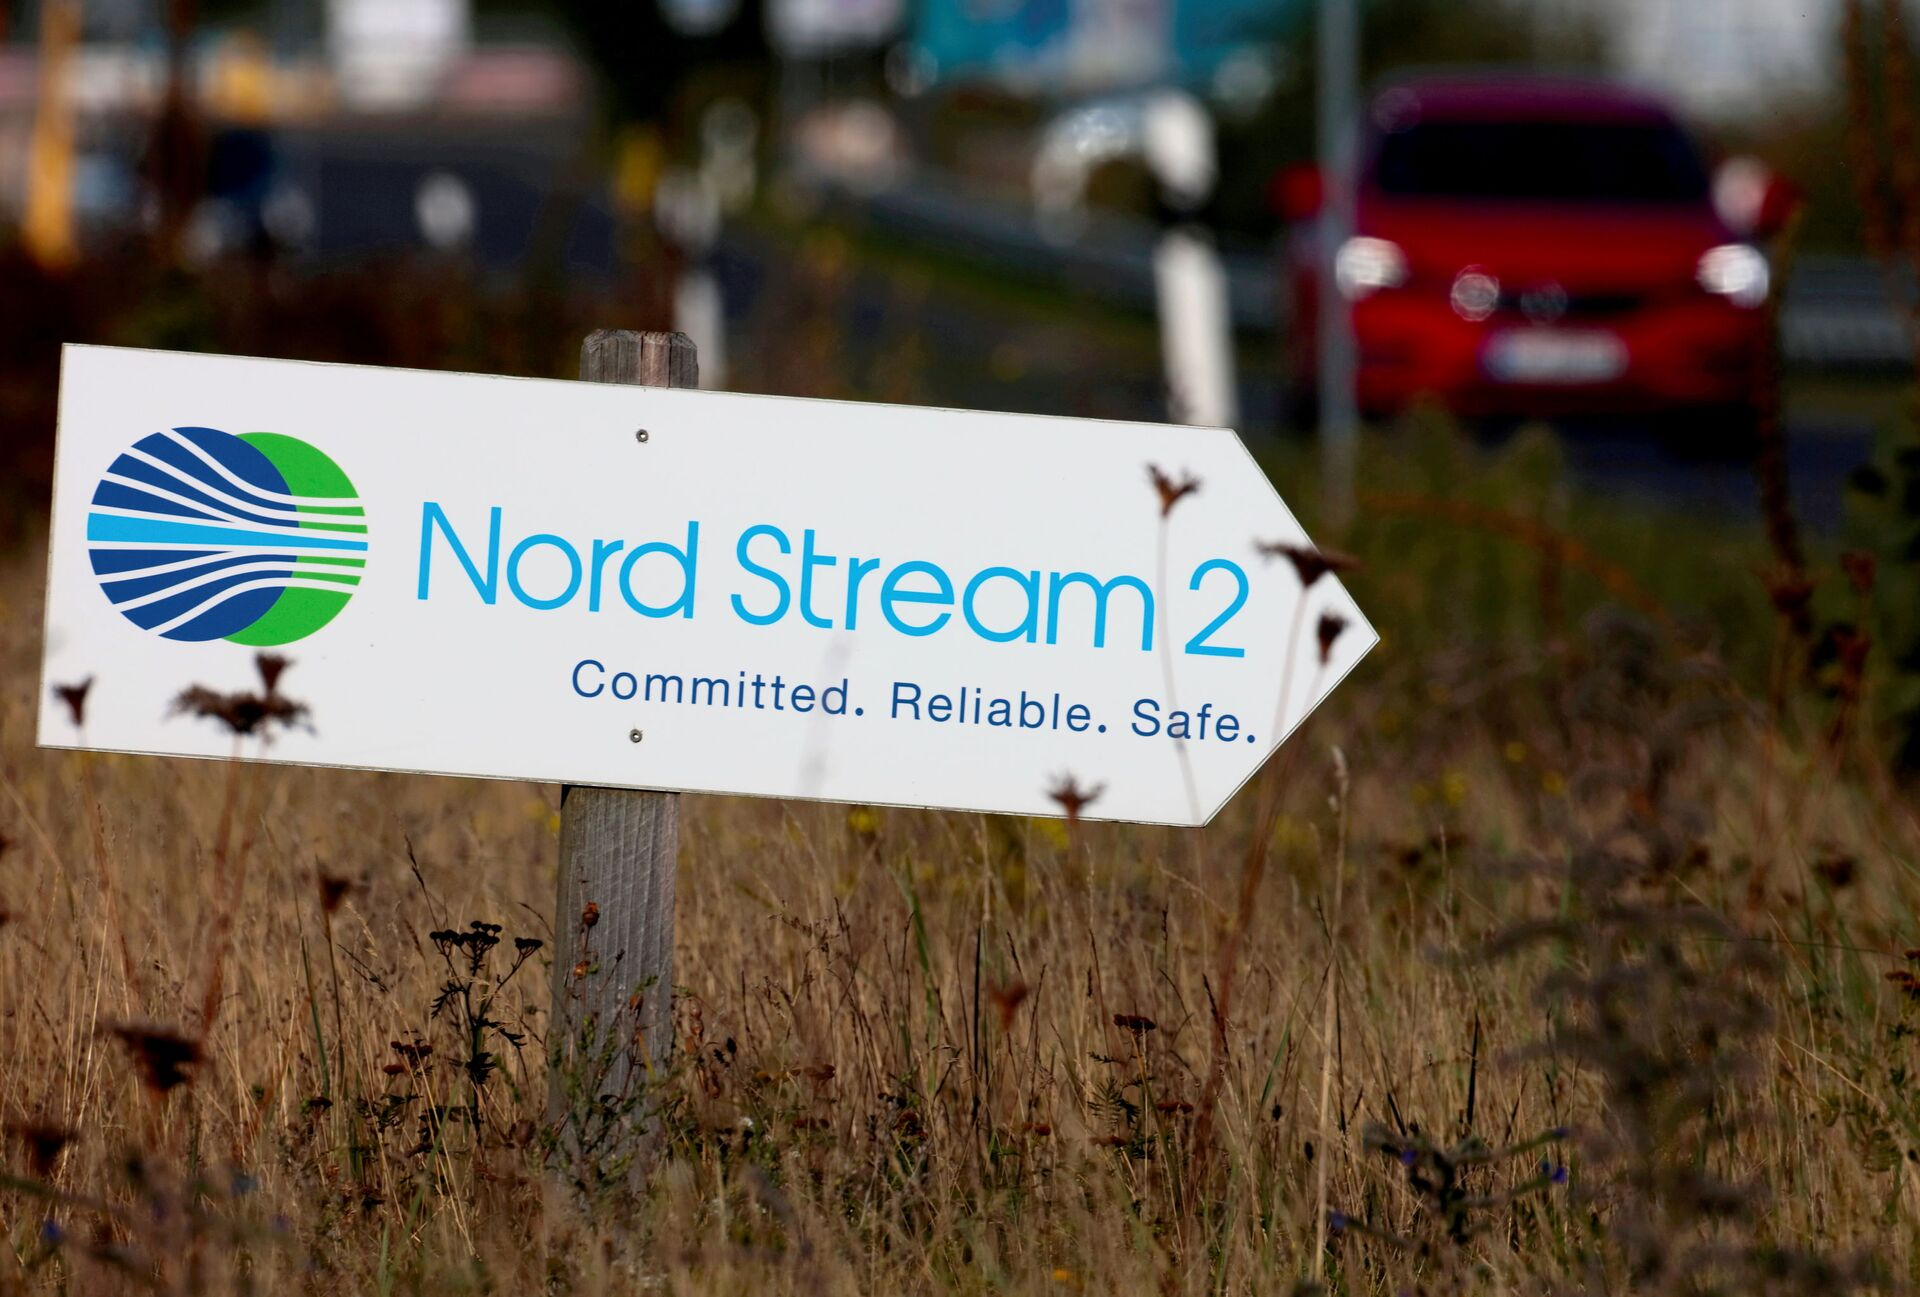 A road sign directs traffic towards the Nord Stream 2 gas line landfall facility entrance in Lubmin, Germany, September 10, 2020.  - Sputnik International, 1920, 07.09.2021